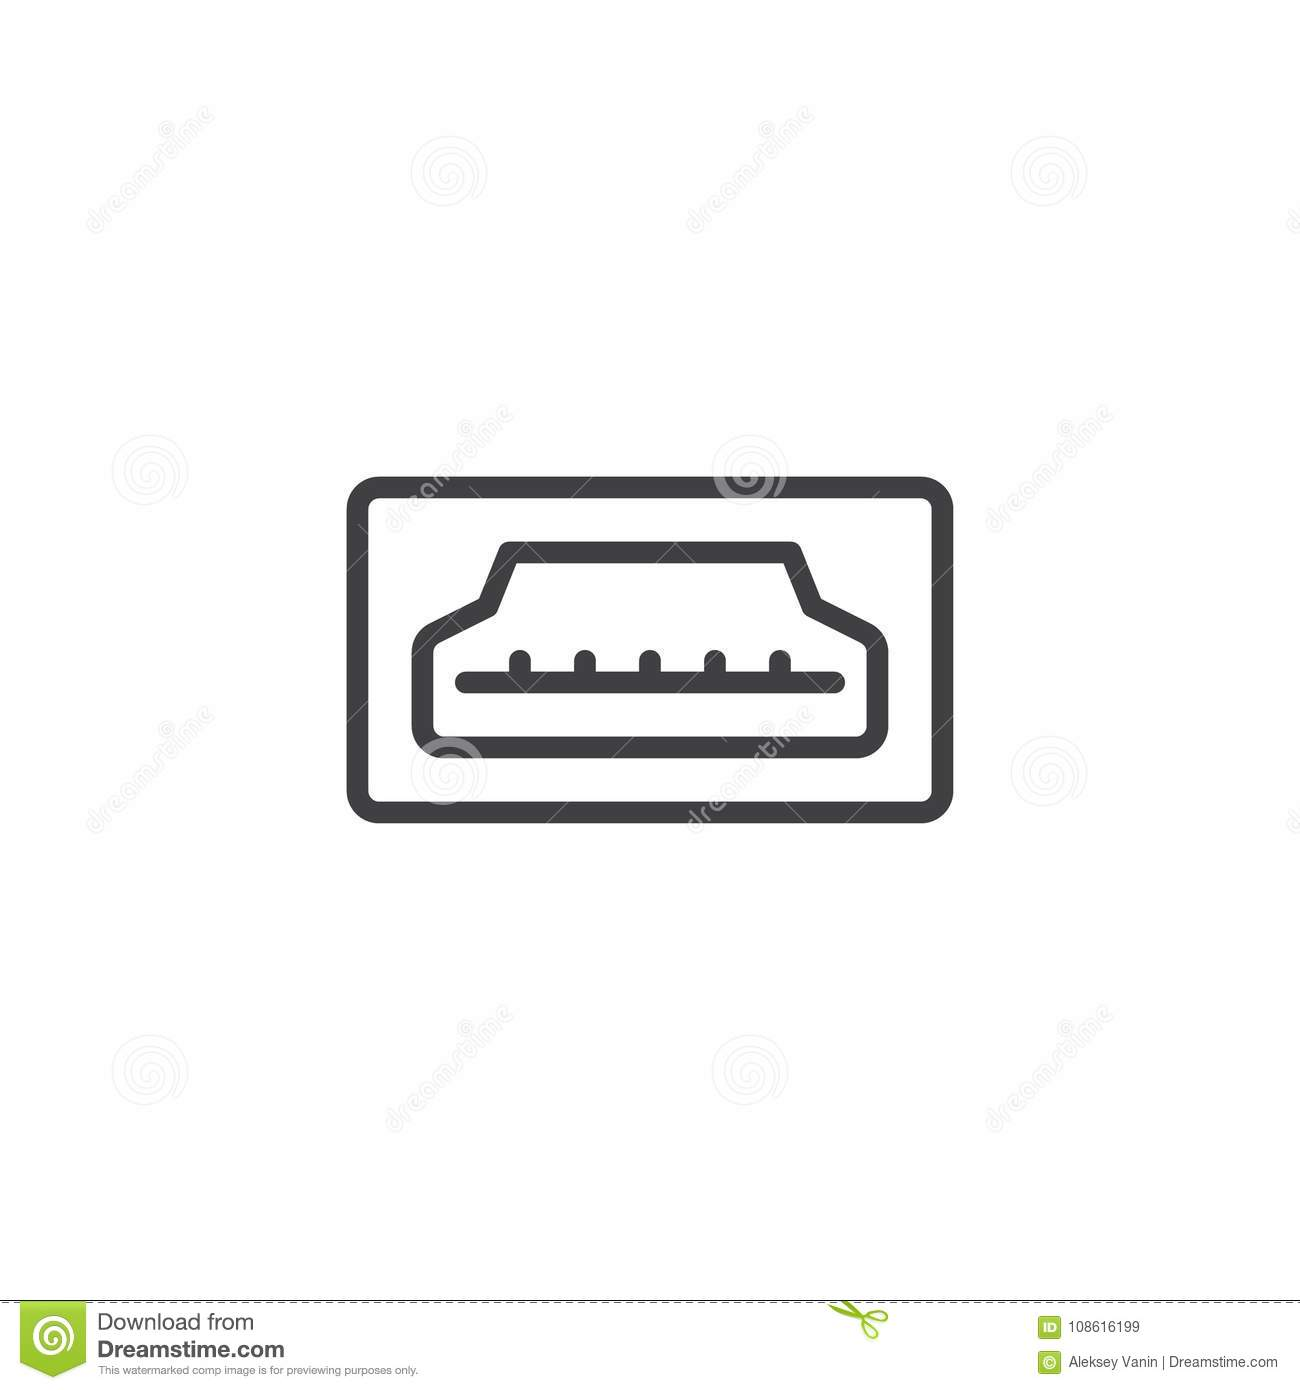 hdmi icon stock illustrations 1 461 hdmi icon stock illustrations vectors clipart dreamstime https www dreamstime com hdmi port line icon outline vector sign linear style pictogram isolated white symbol logo illustration editable stroke hdmi image108616199